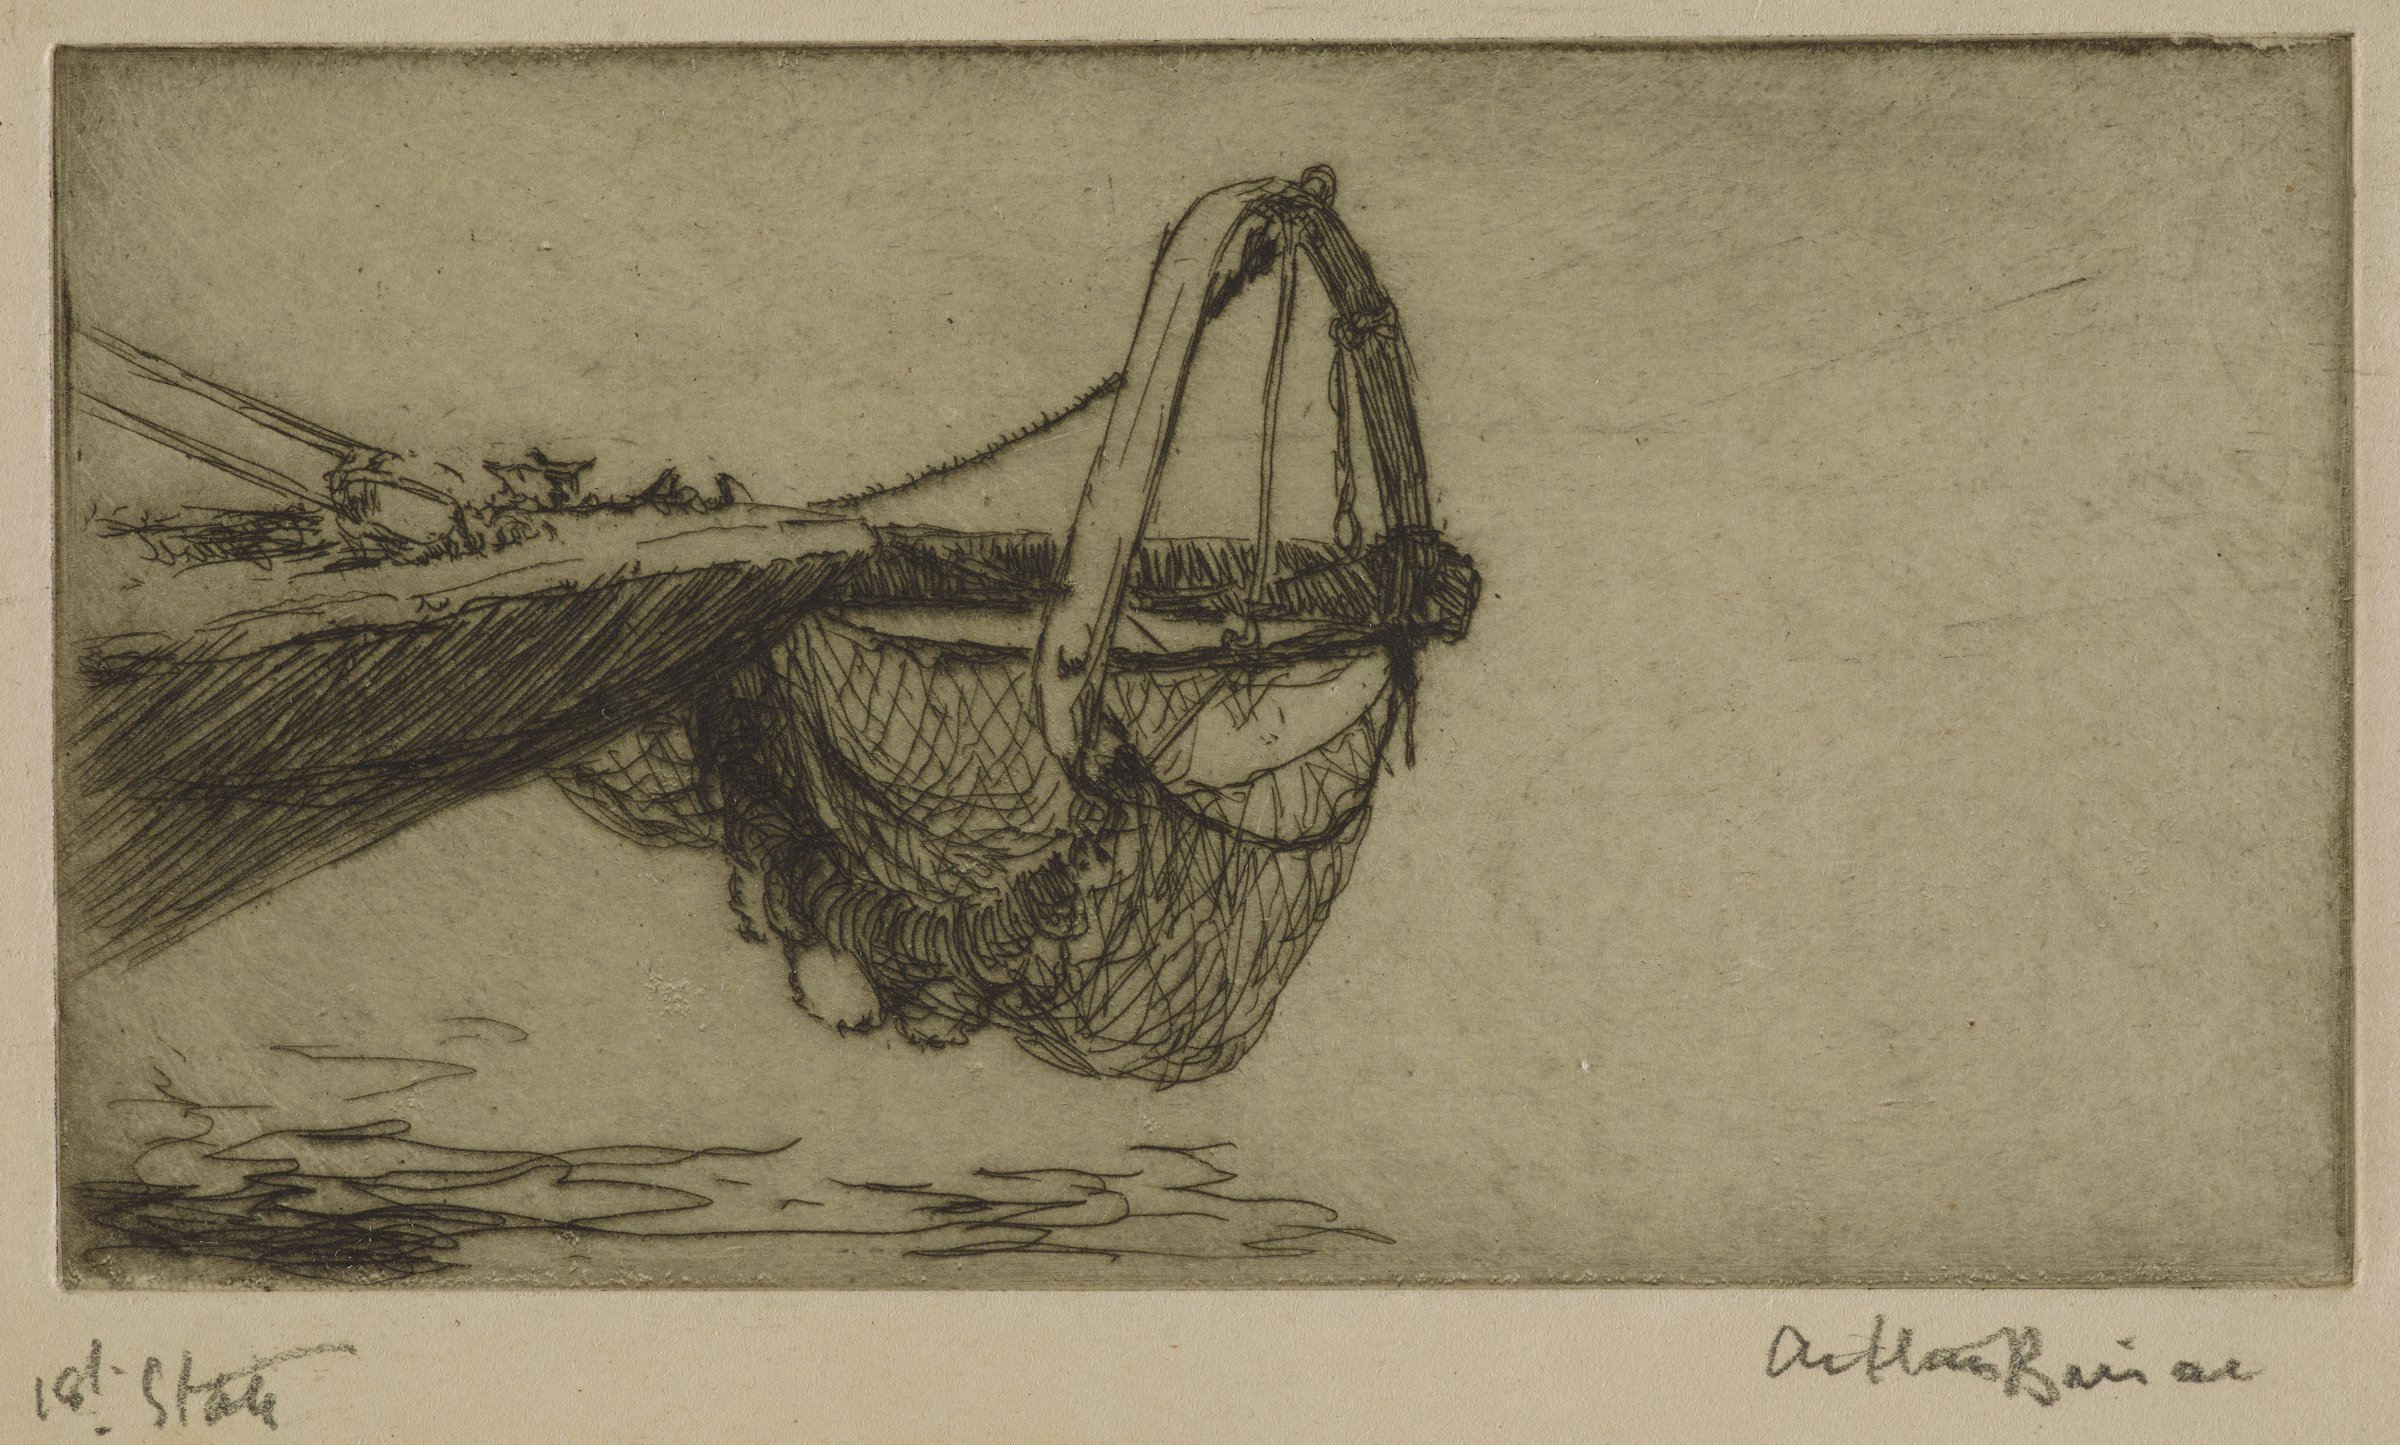 Image of a trawl net hooked to the front of a ship.